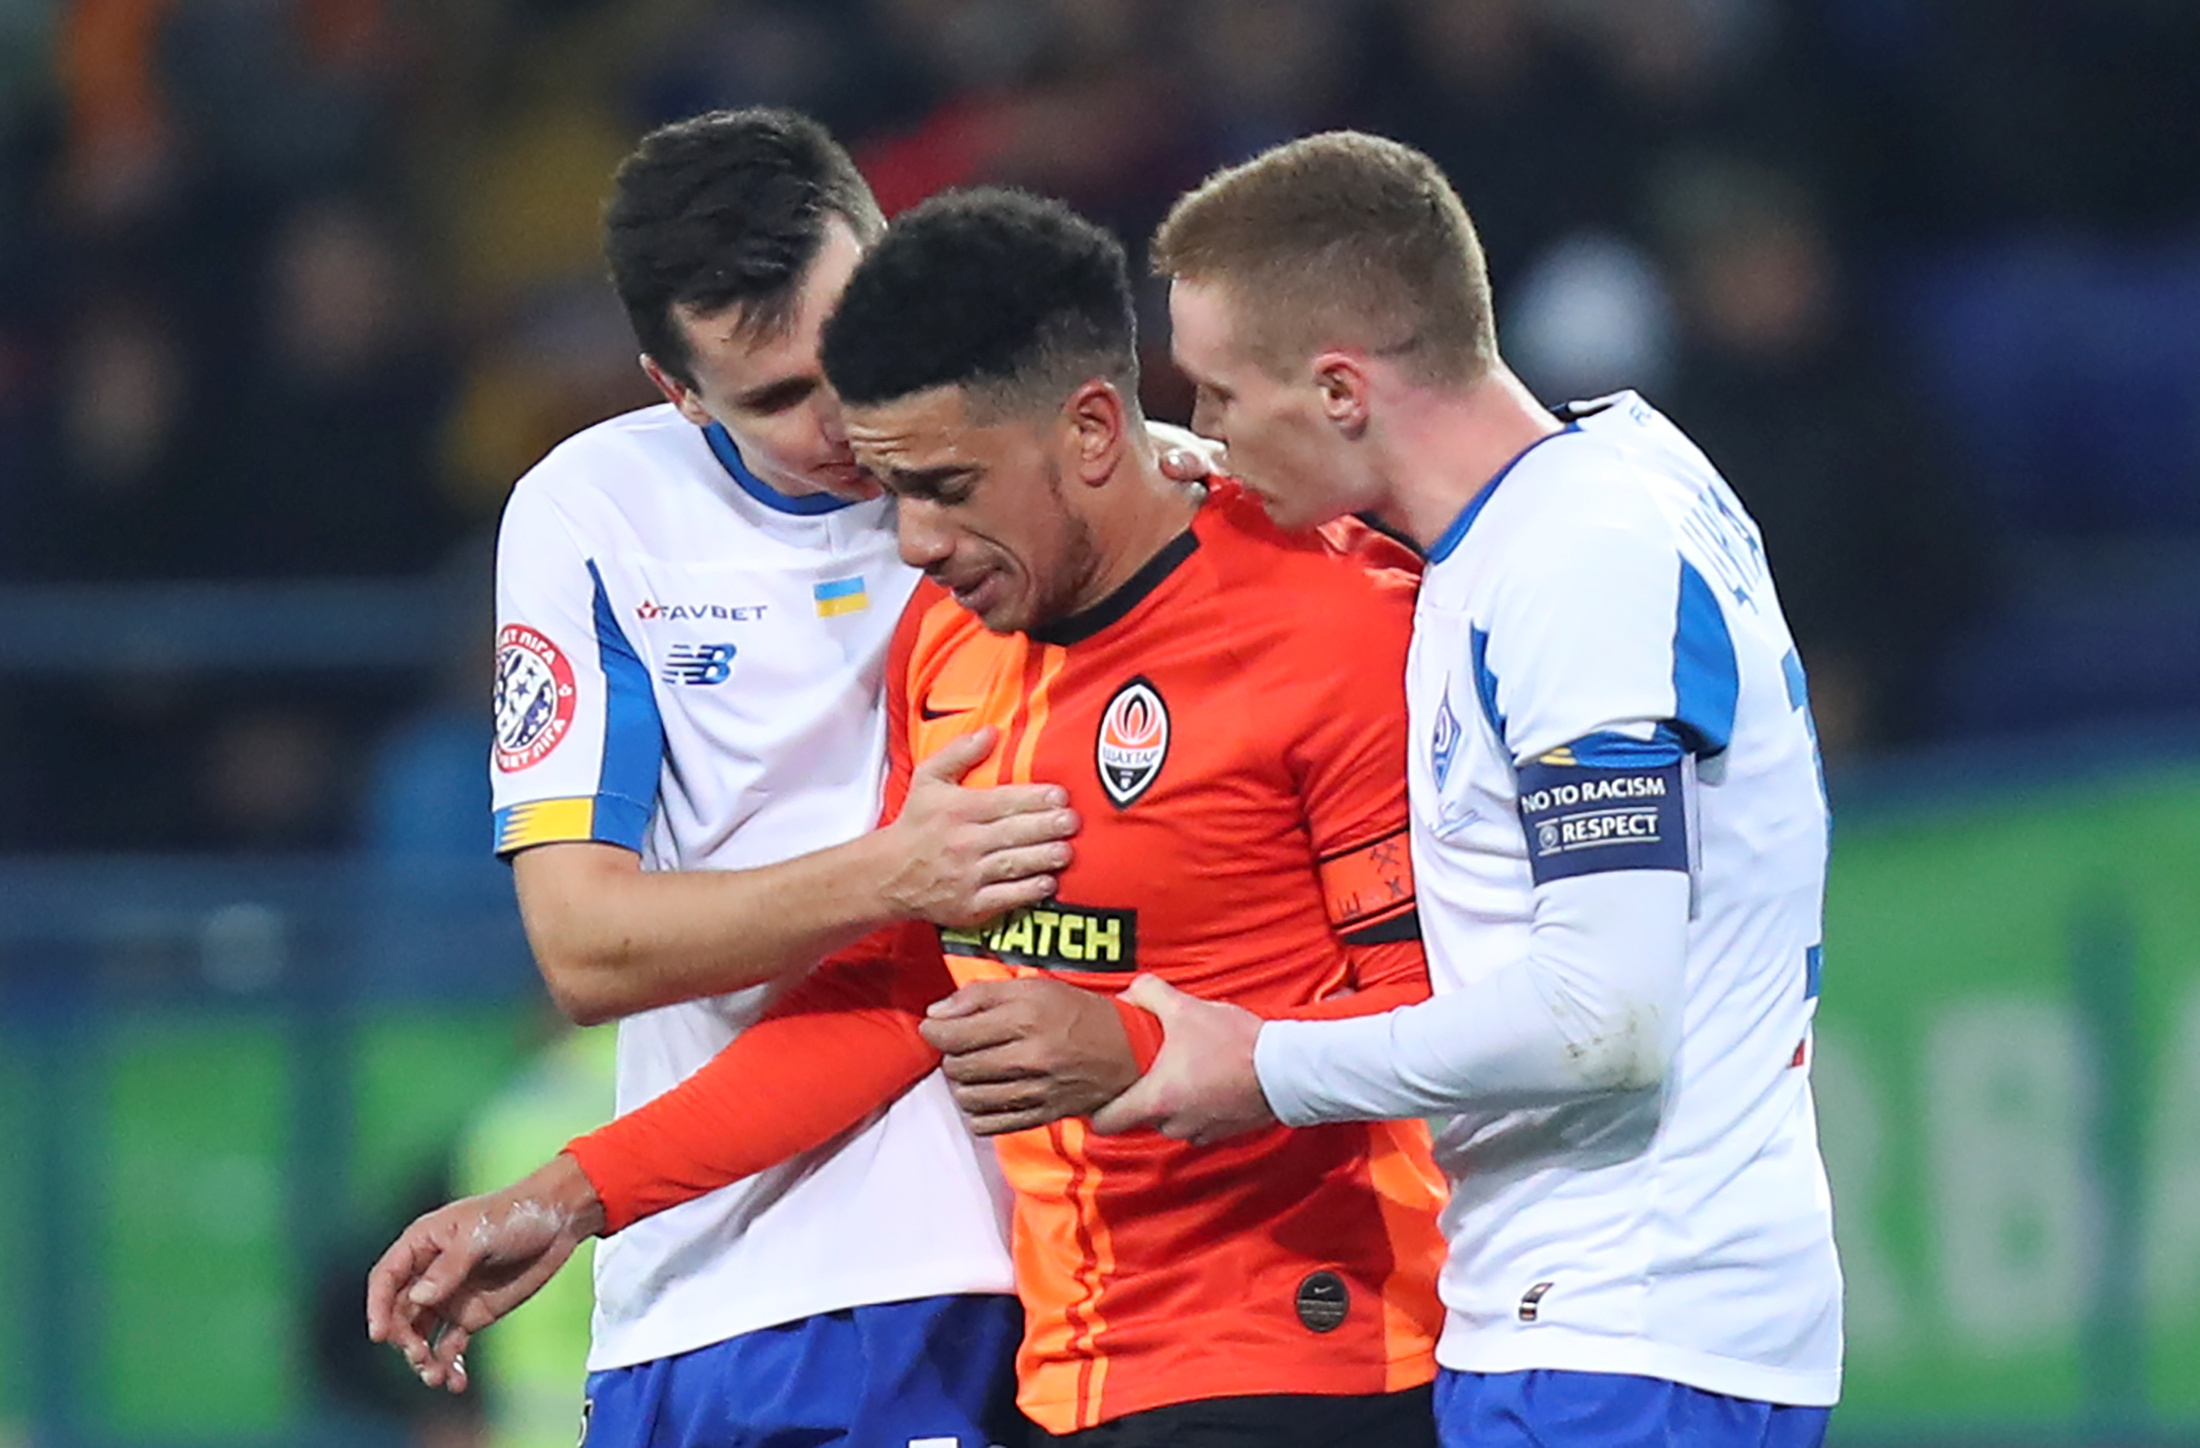 Tearful Shakhtar captain Taison sent off despite being racially abused in Ukraine